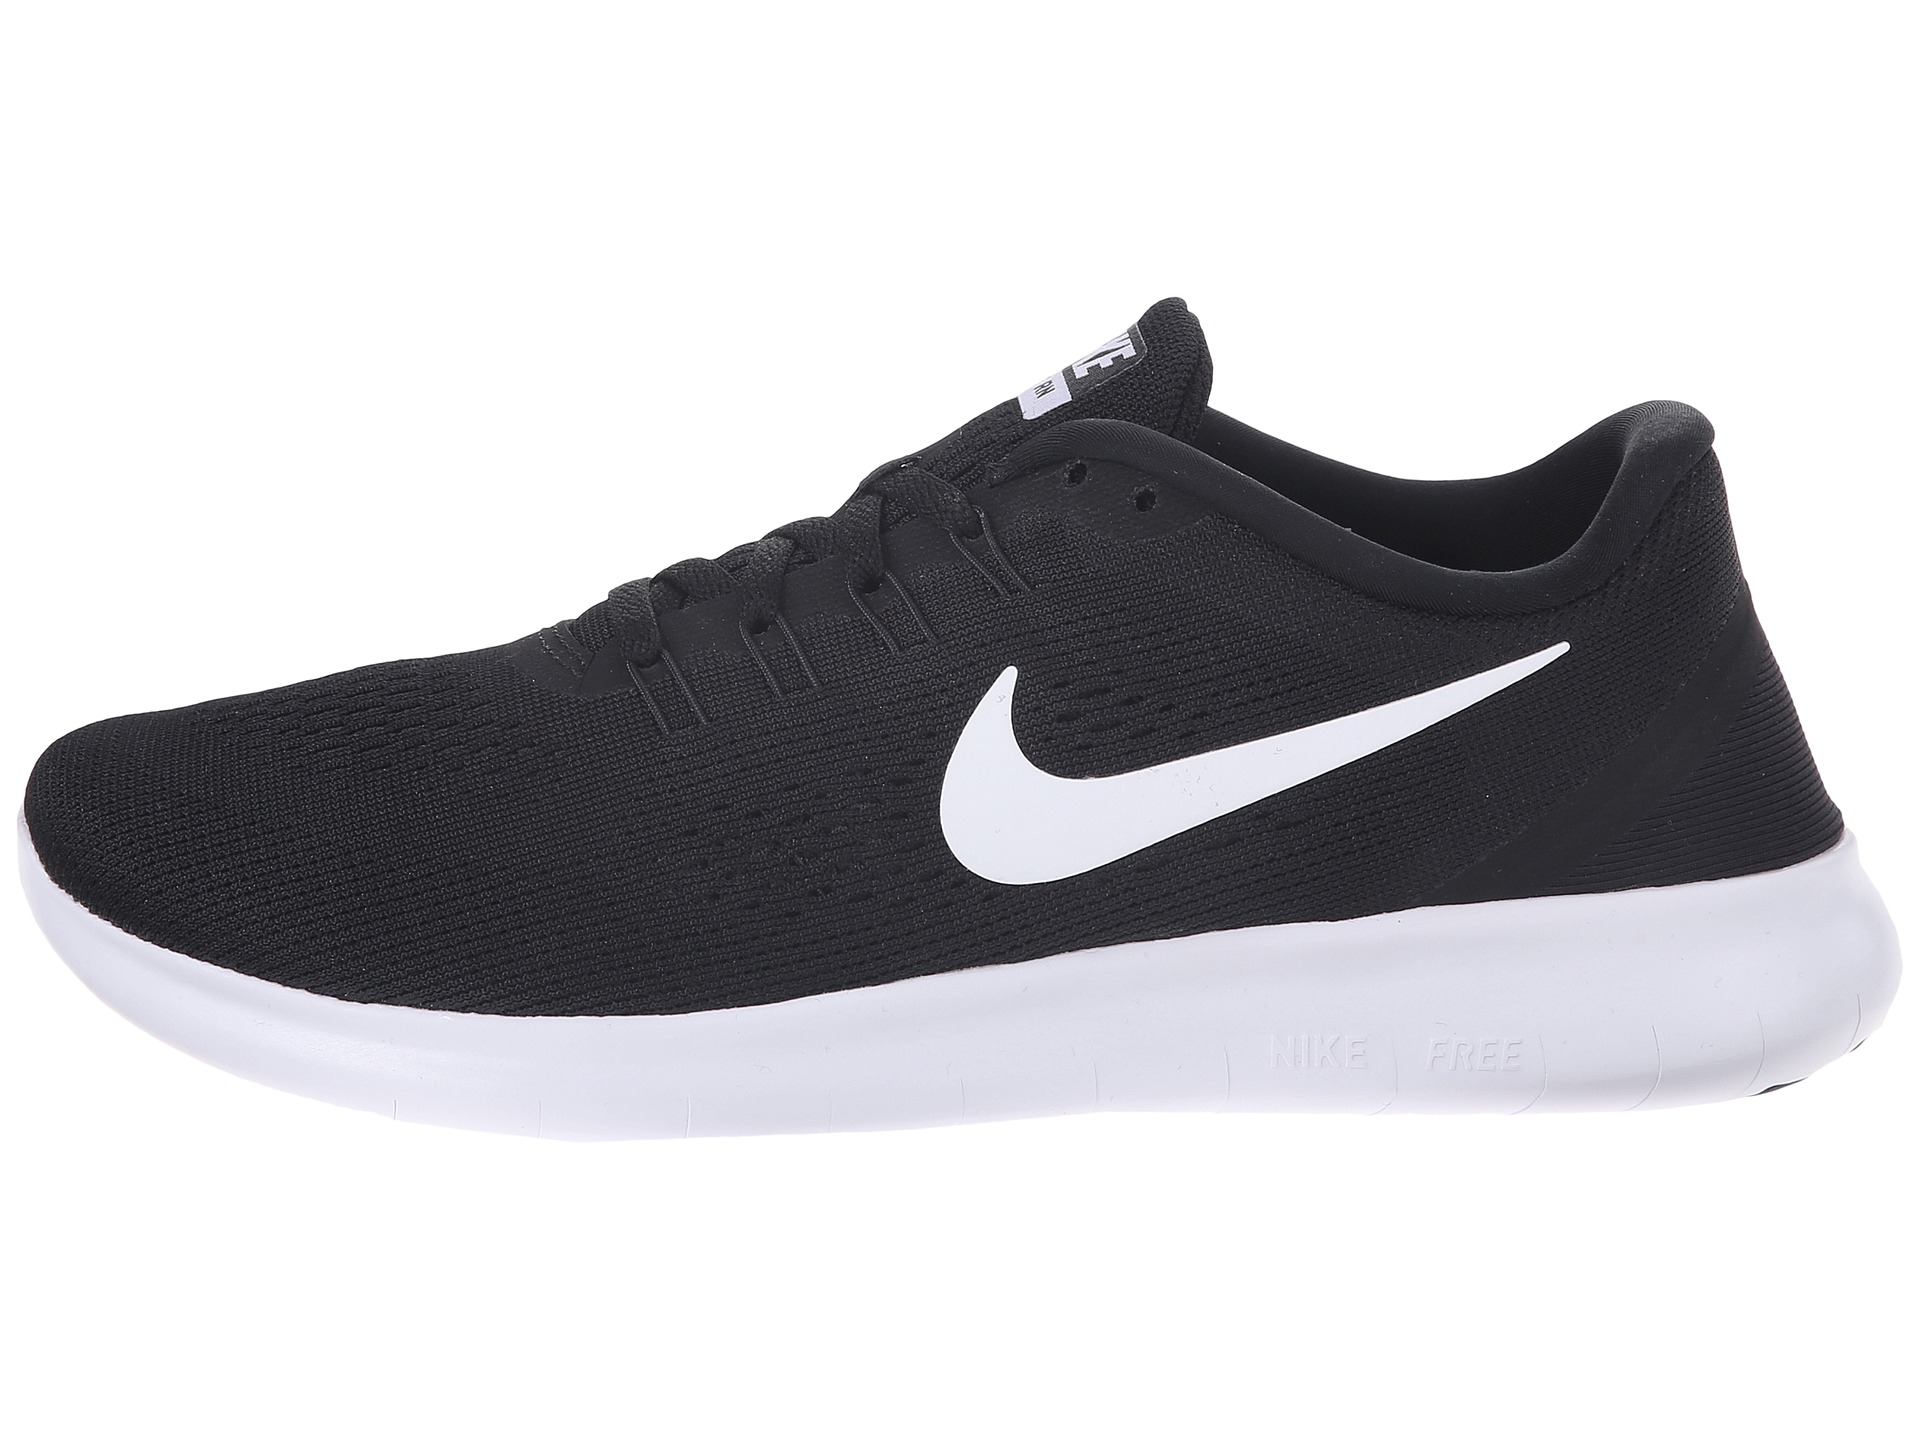 Nike Womens Free Shoes Review